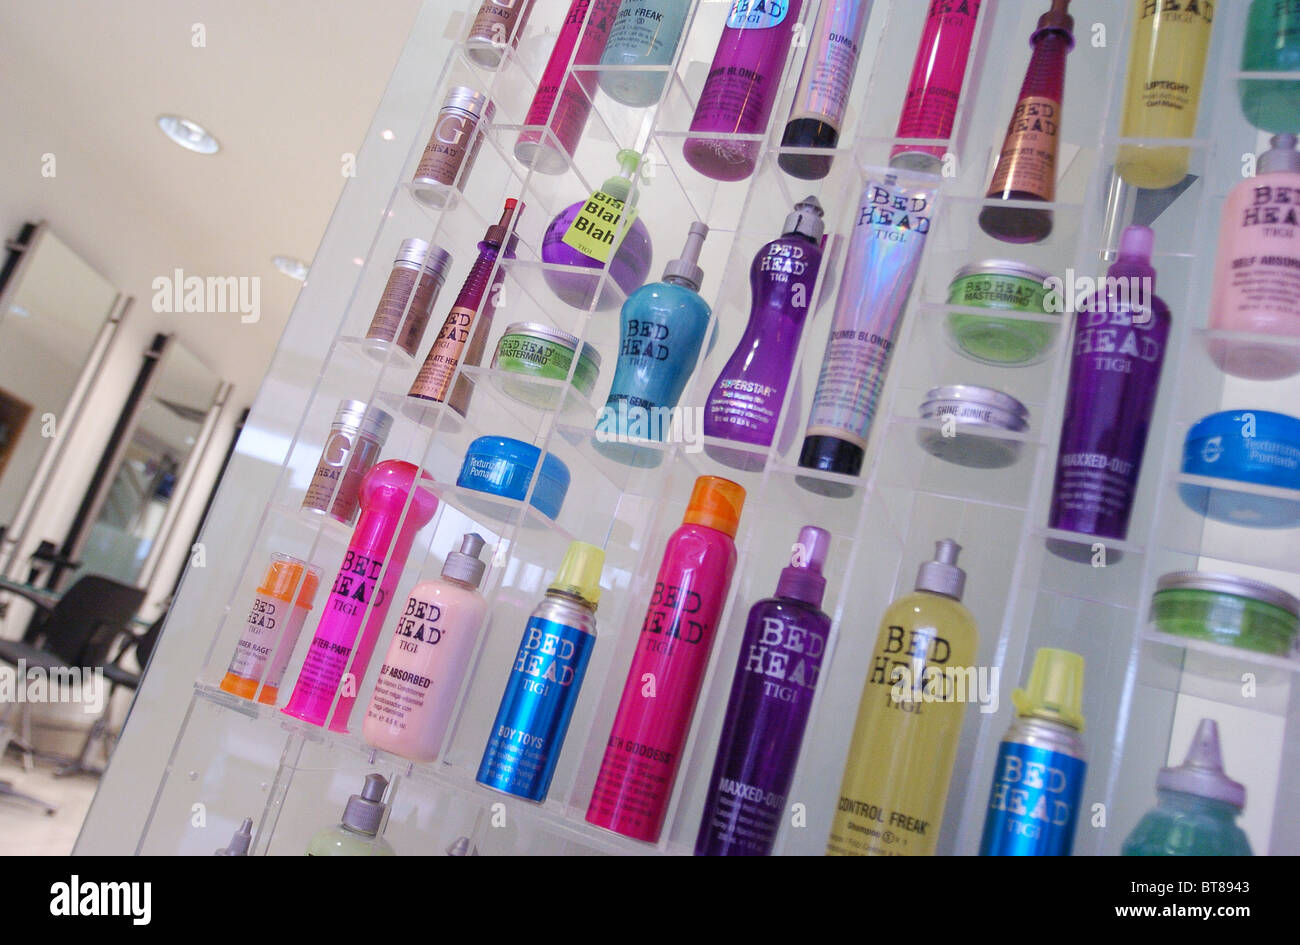 Hair Products On Display In A Hairdressers Salon Stock